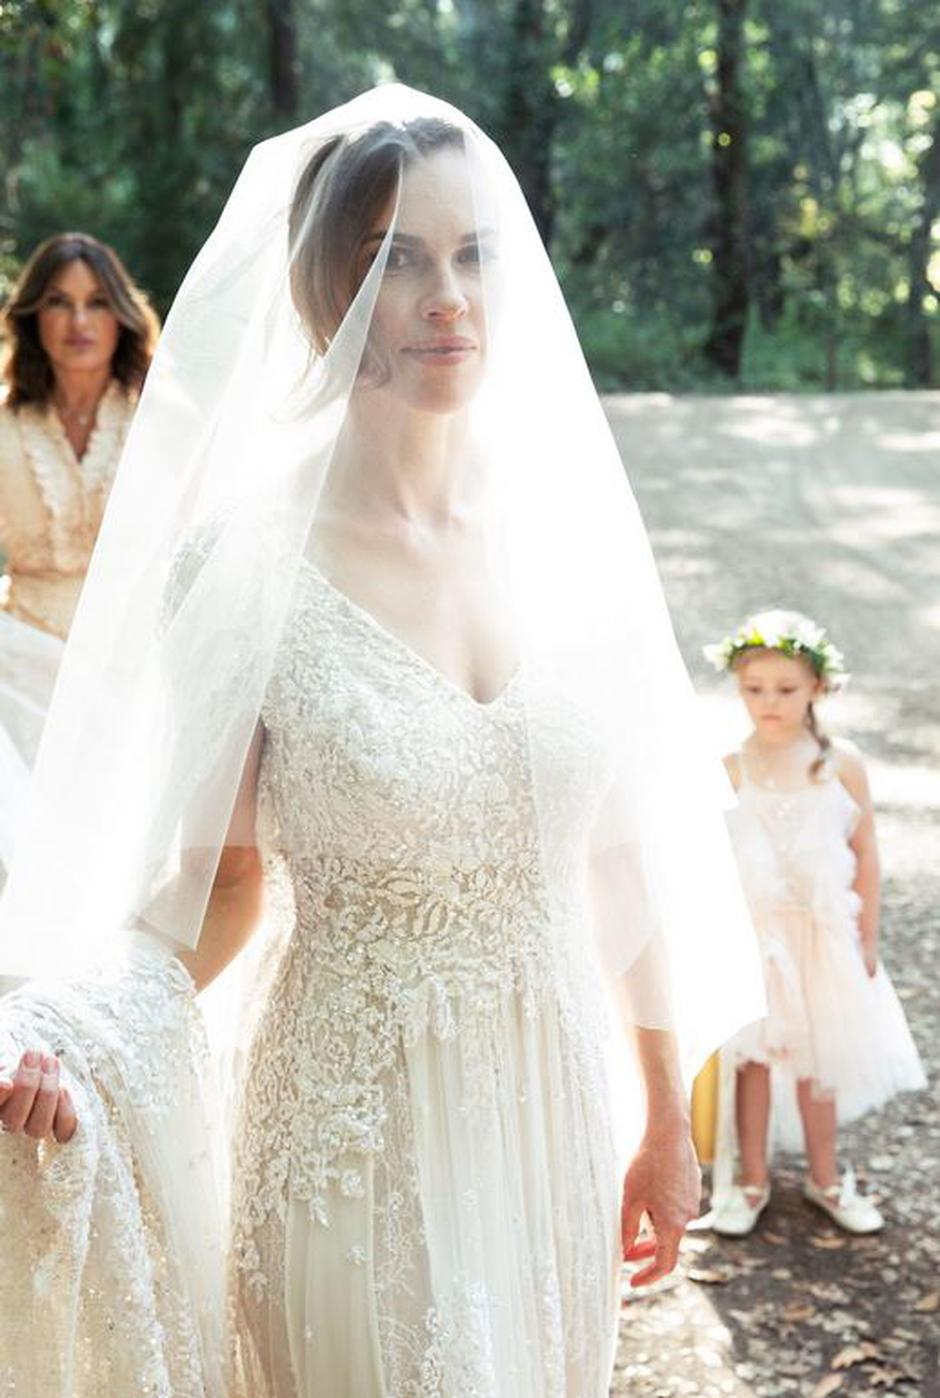 Hilary Swank Ties The Knot In Secret Wedding Complete With First